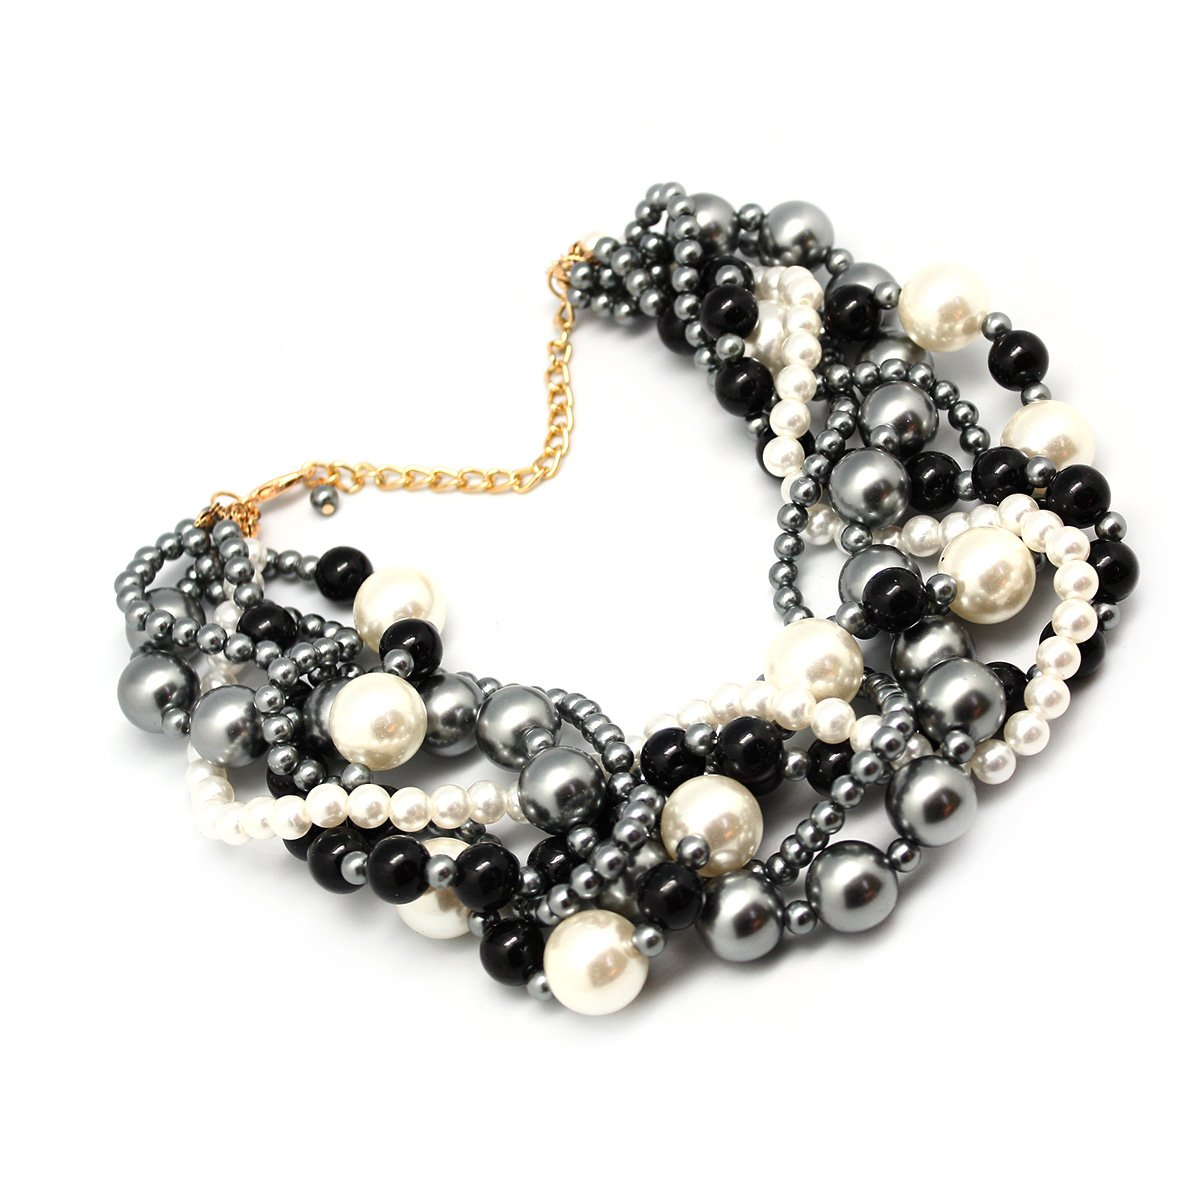 MeliMe Women's Imitation Pearl Twisty Chunky Bib Necklace Pearl Chokers for Wedding Party by MeliMe (Image #4)